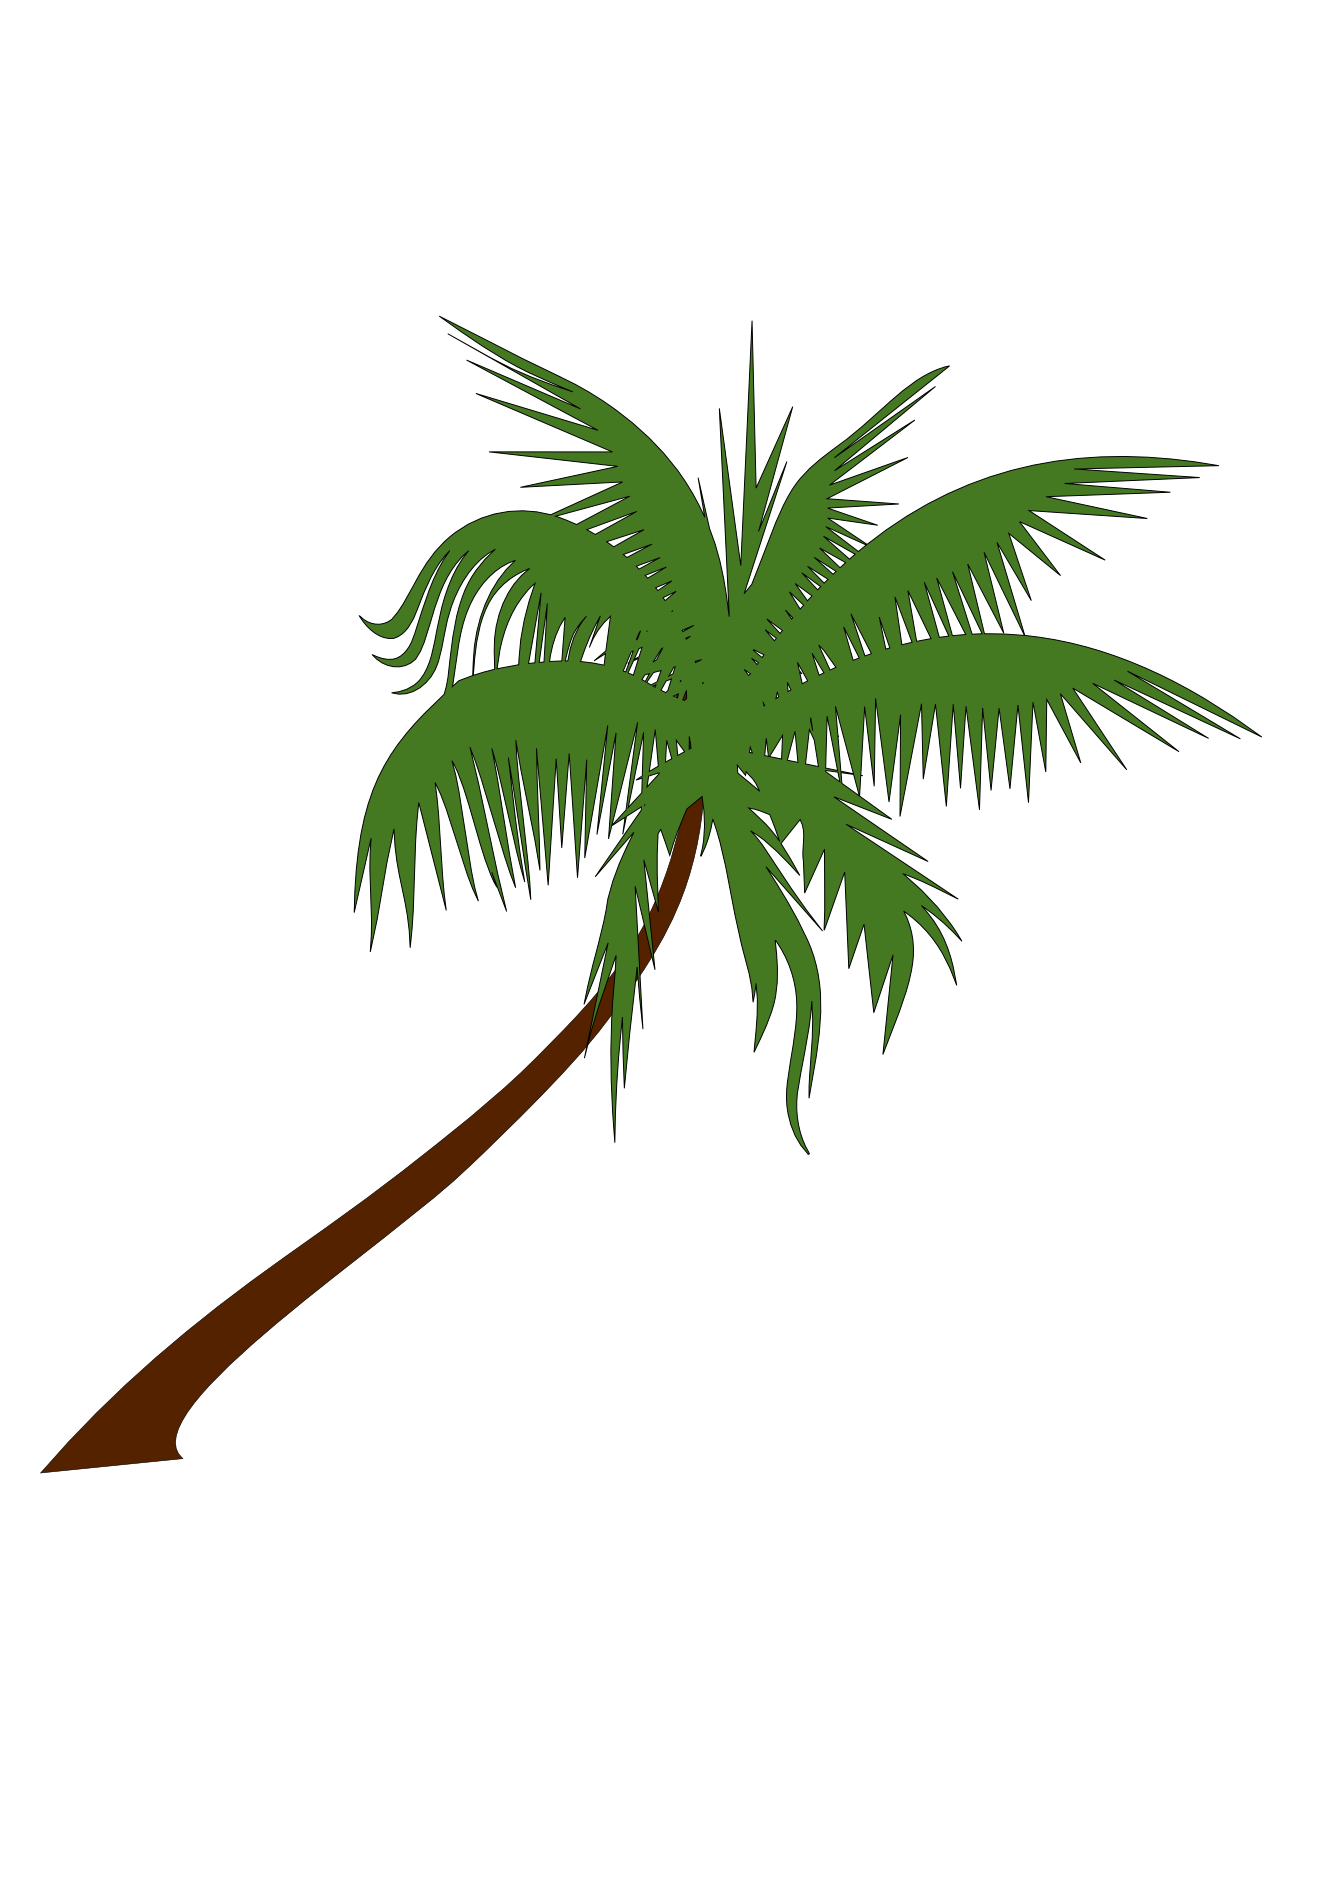 Birds eye view palm trees png. Free tree vector art